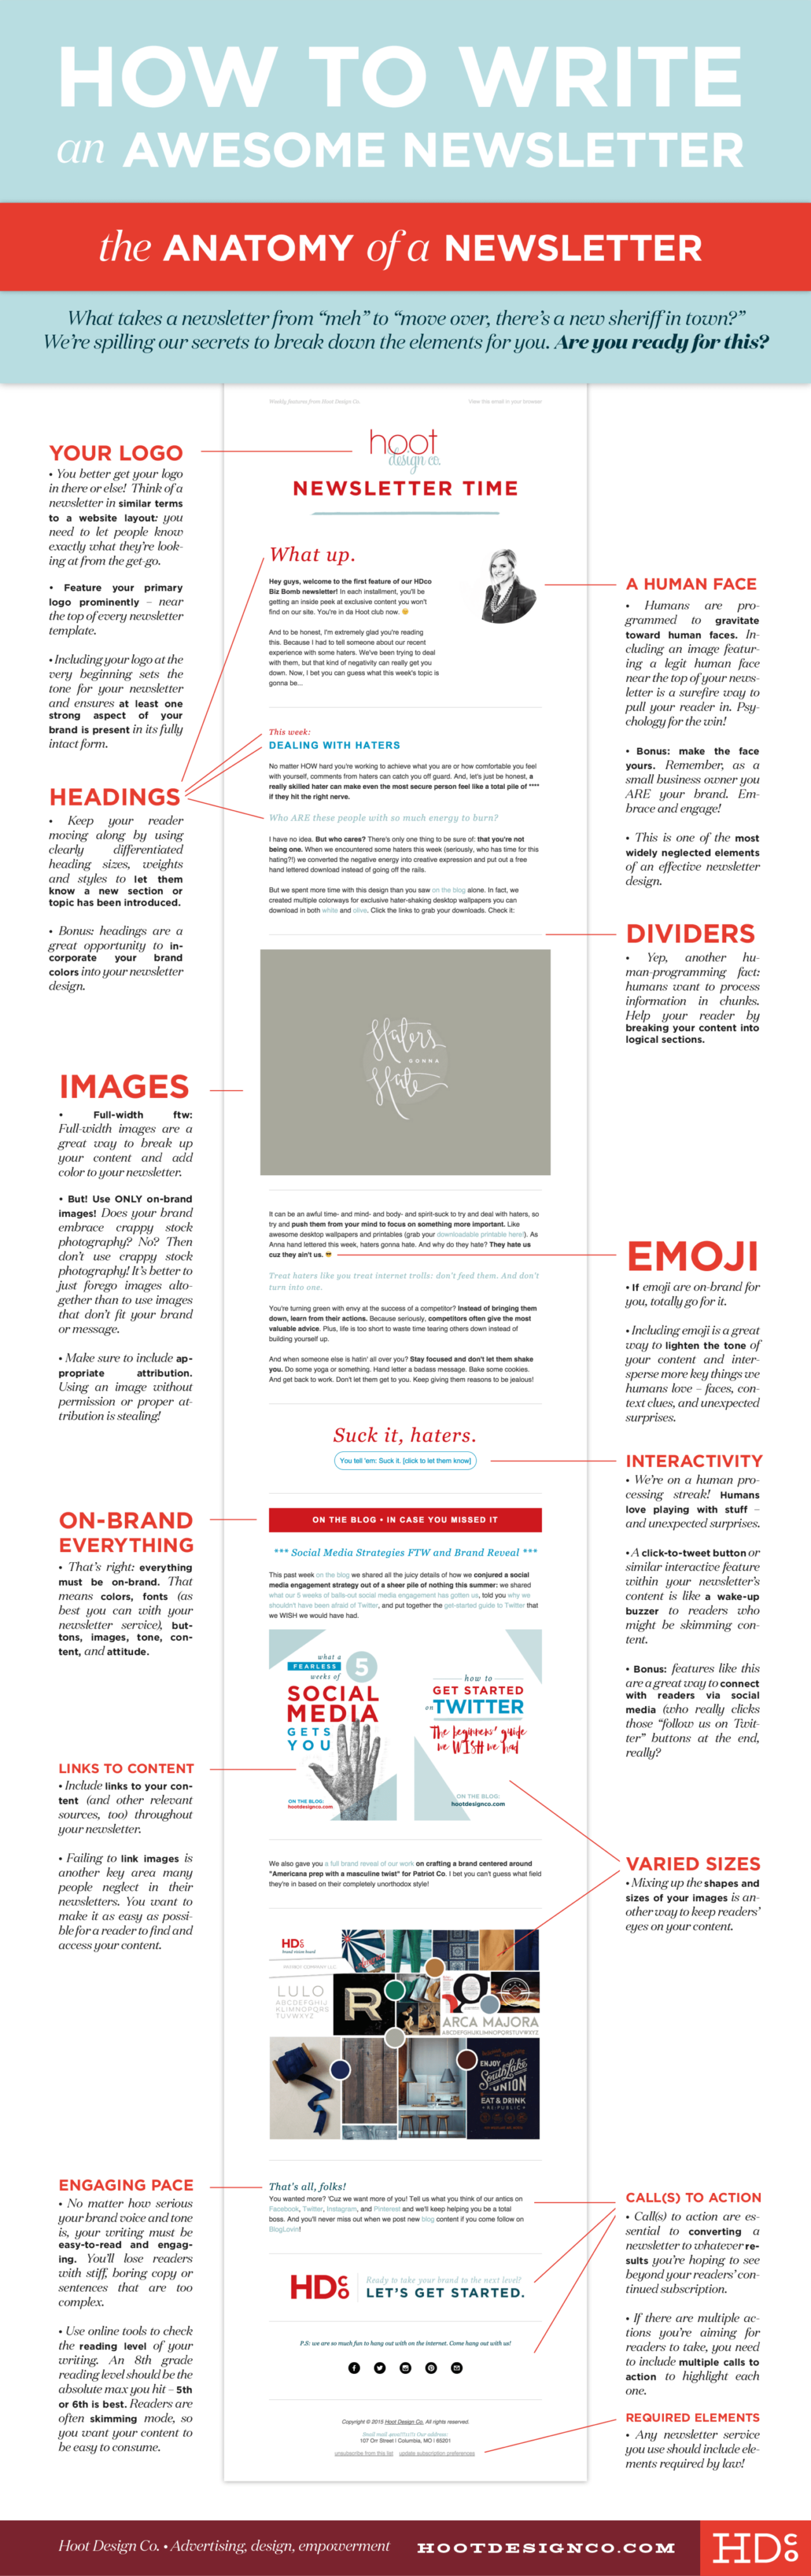 These+are+the+key+elements+to+writing+a+good+newsletter